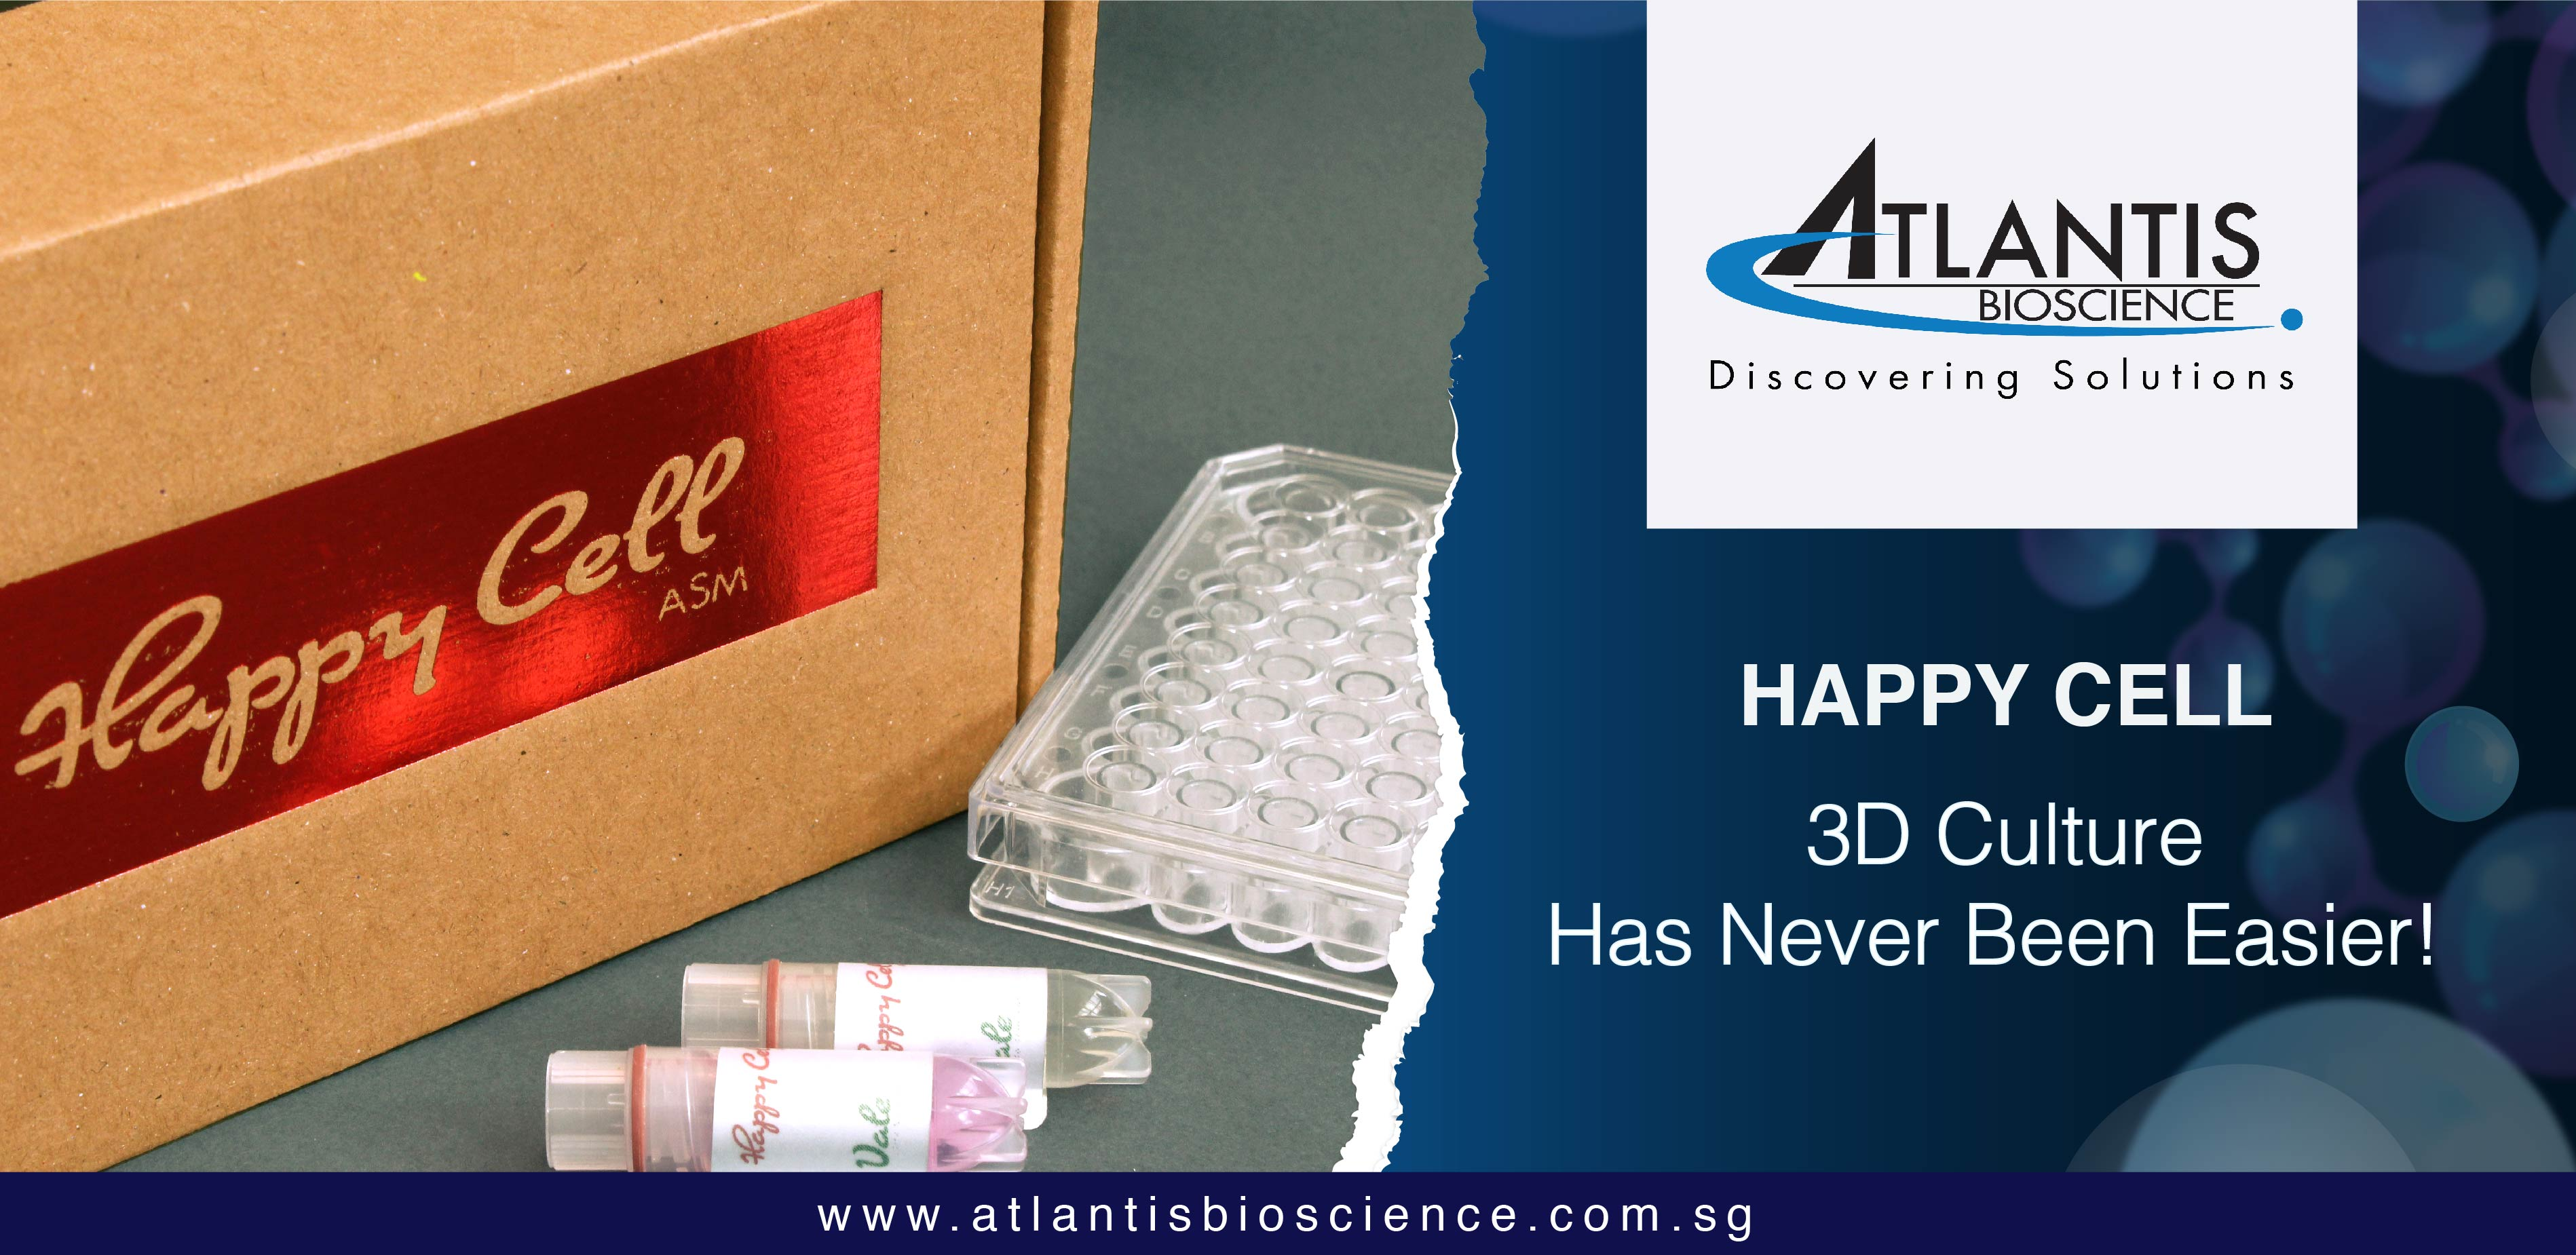 Happy Cell -Happier way to do 3D cultures